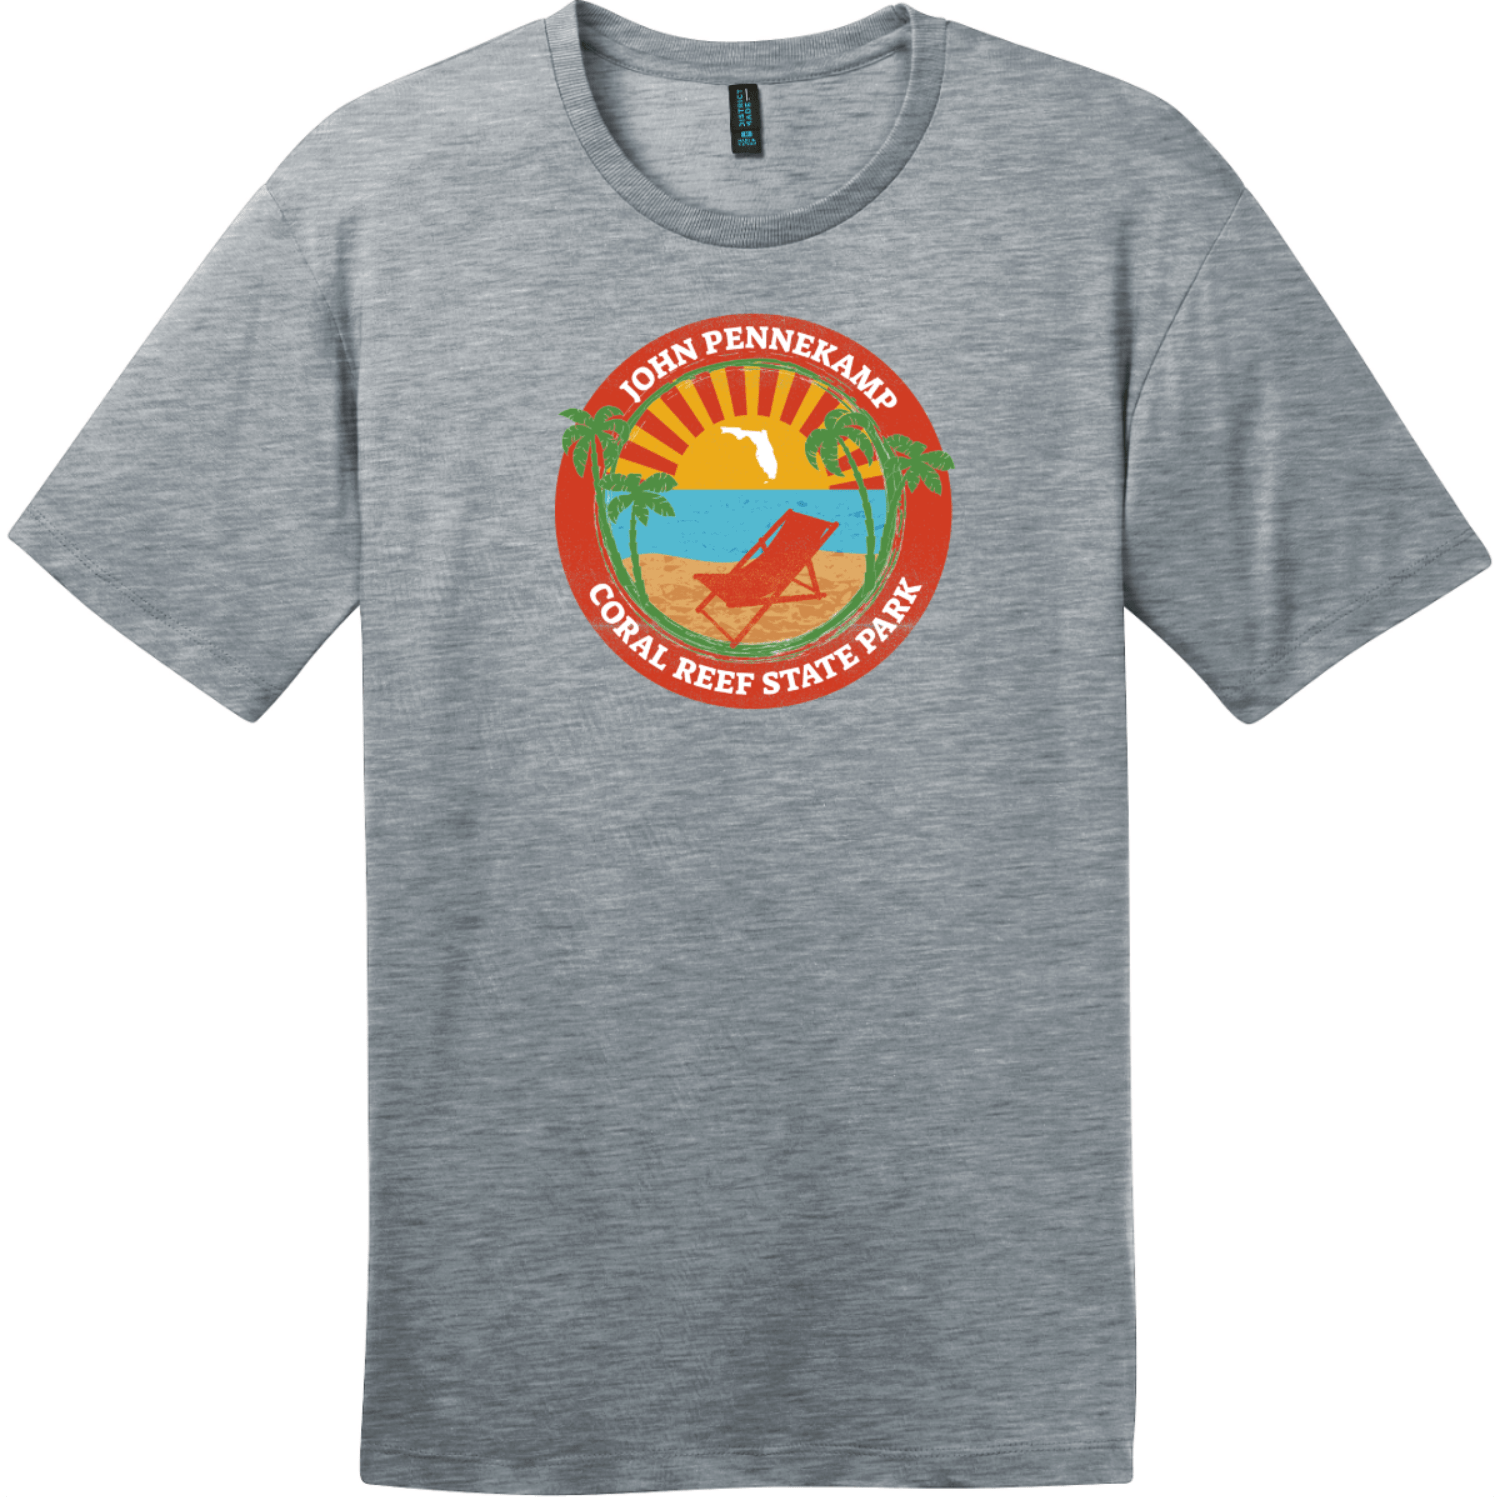 John Pennekamp Coral Reef State Park T-Shirt Heathered Steel District Perfect Weight Tee DT104